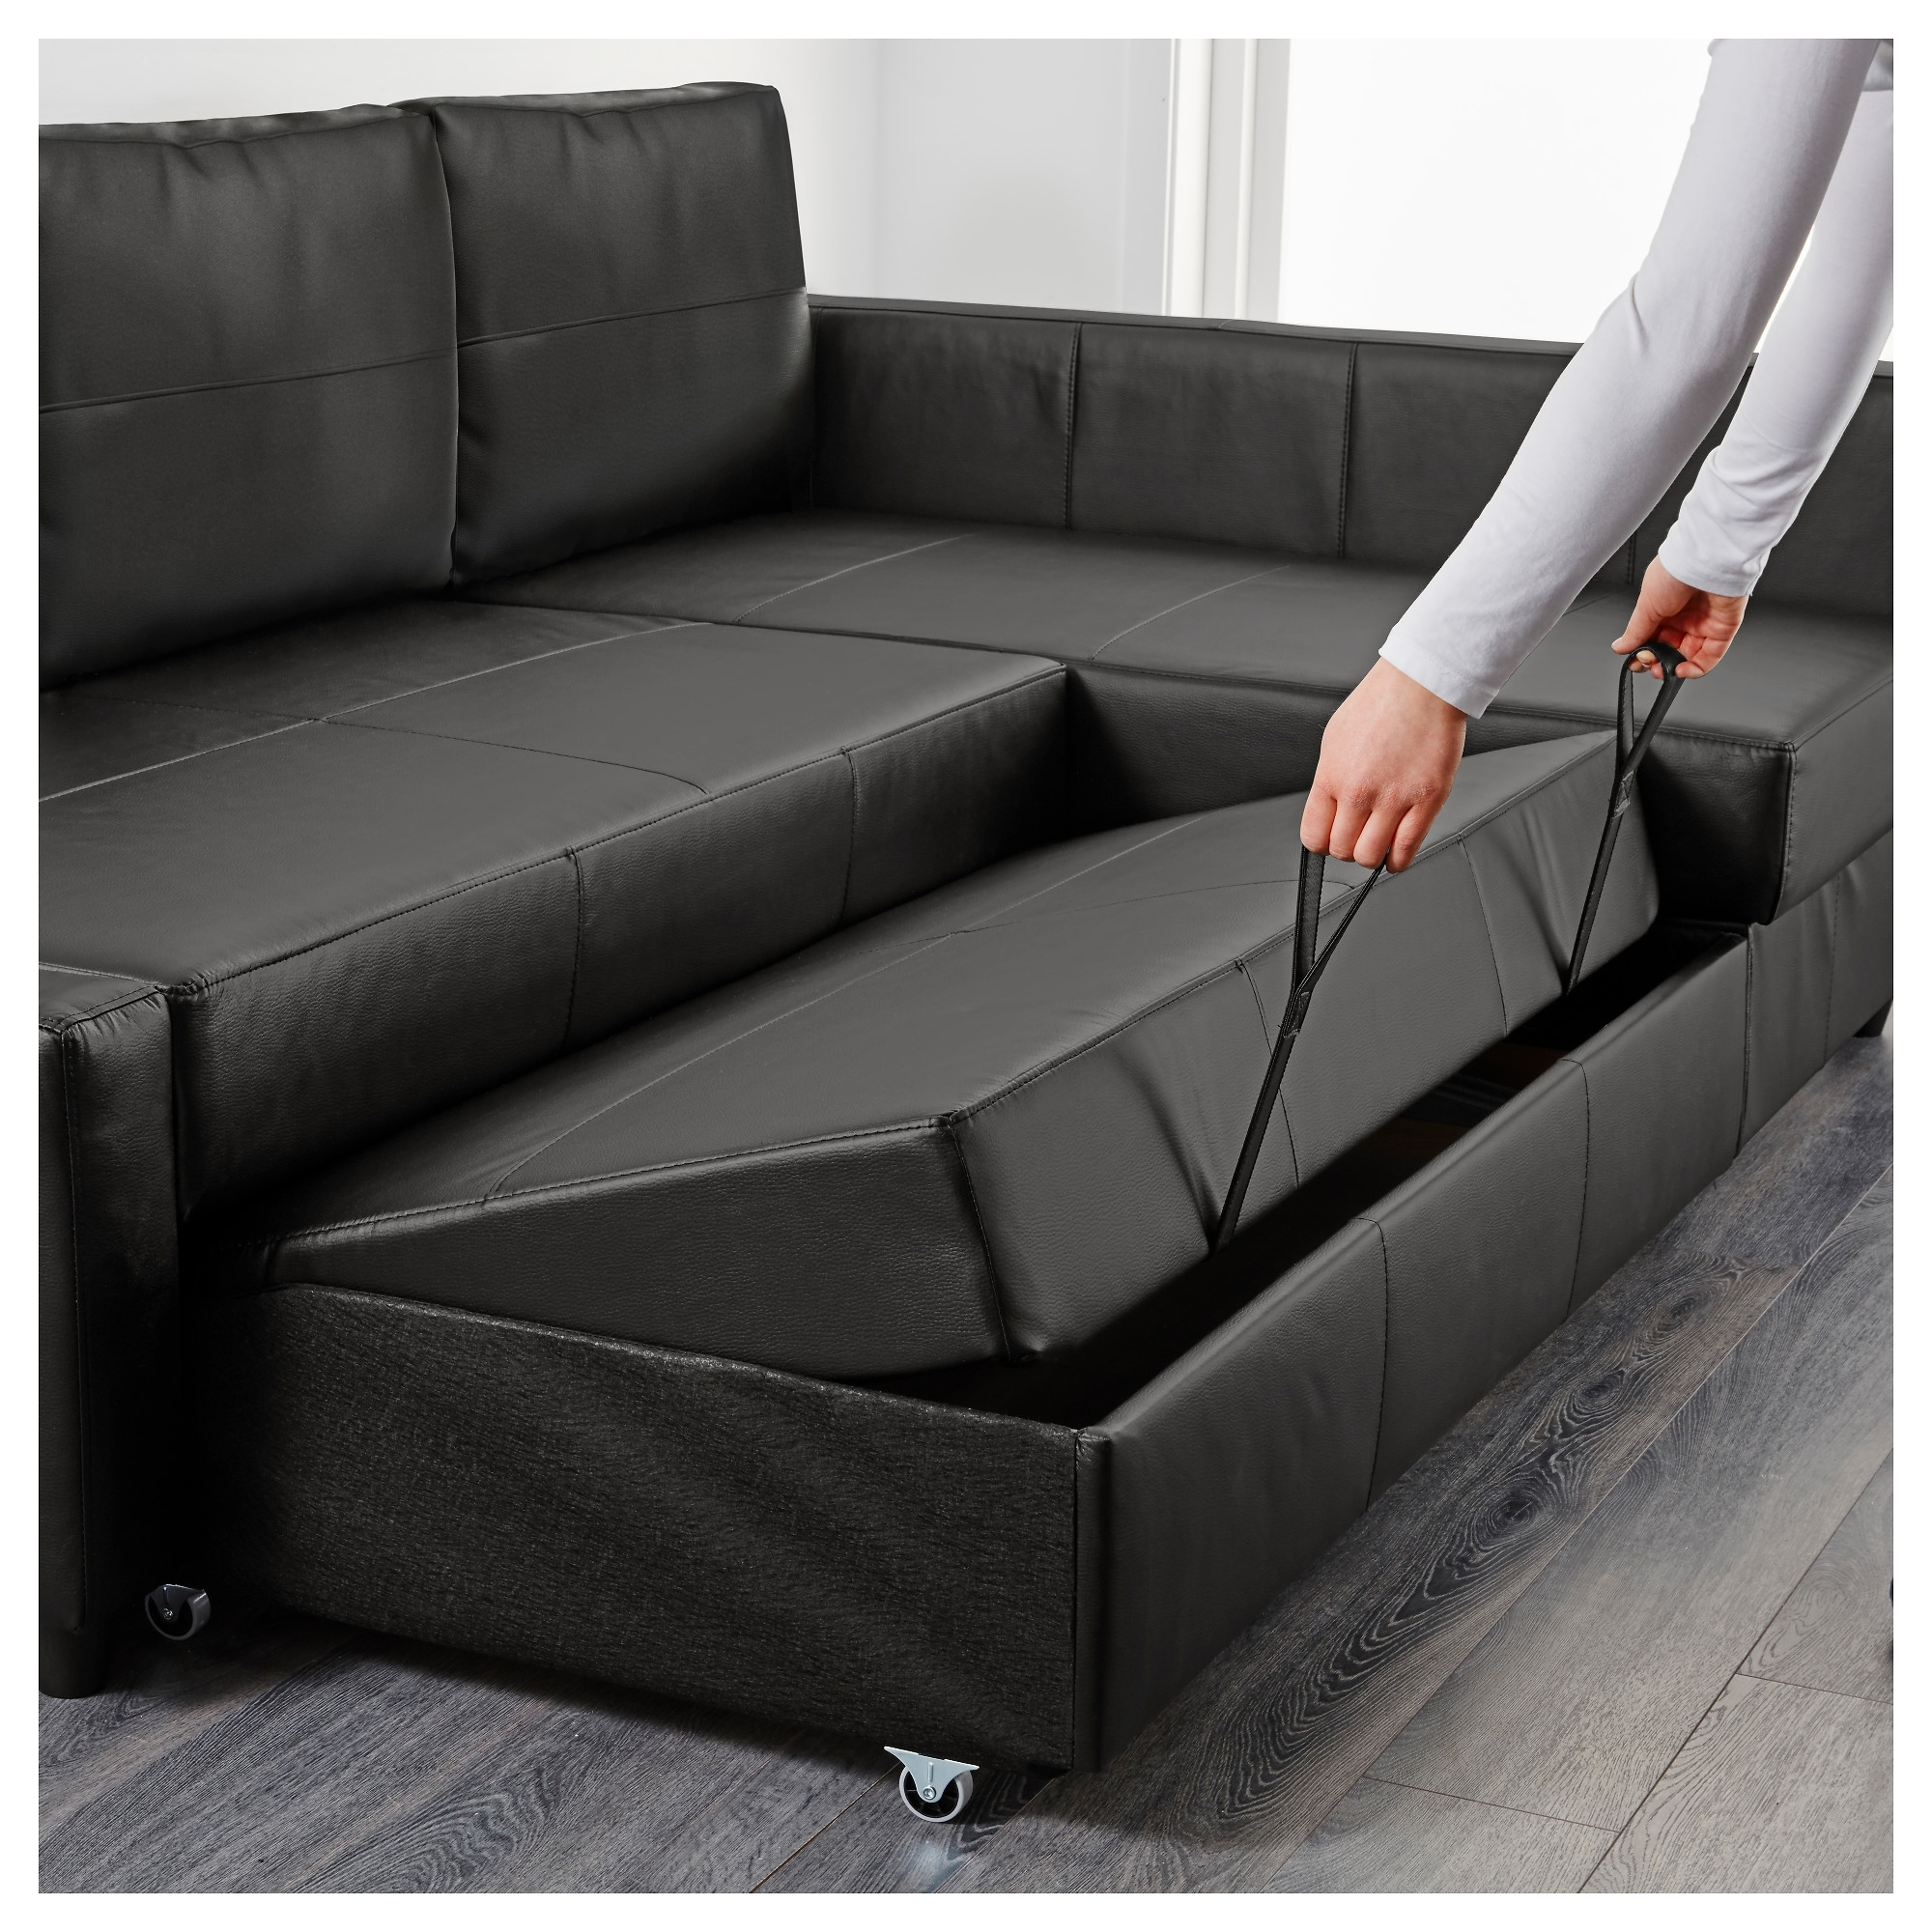 Well Known Friheten Sleeper Sectional,3 Seat W/storage – Skiftebo Dark Gray Within Leather Sofas With Storage (View 15 of 15)